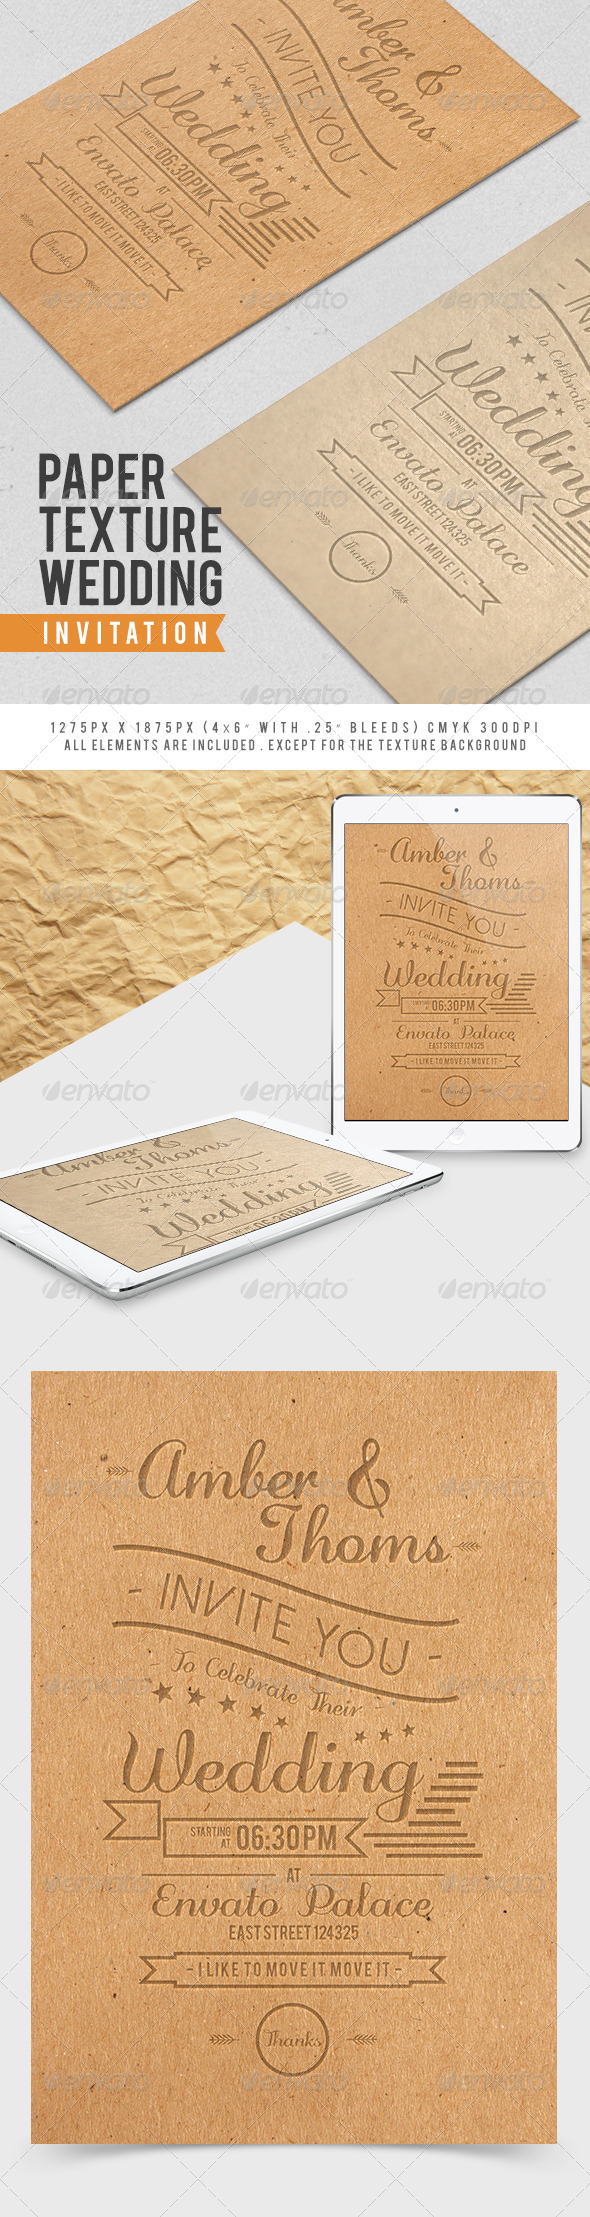 GraphicRiver Paper Texture Wedding Invitation 7857665